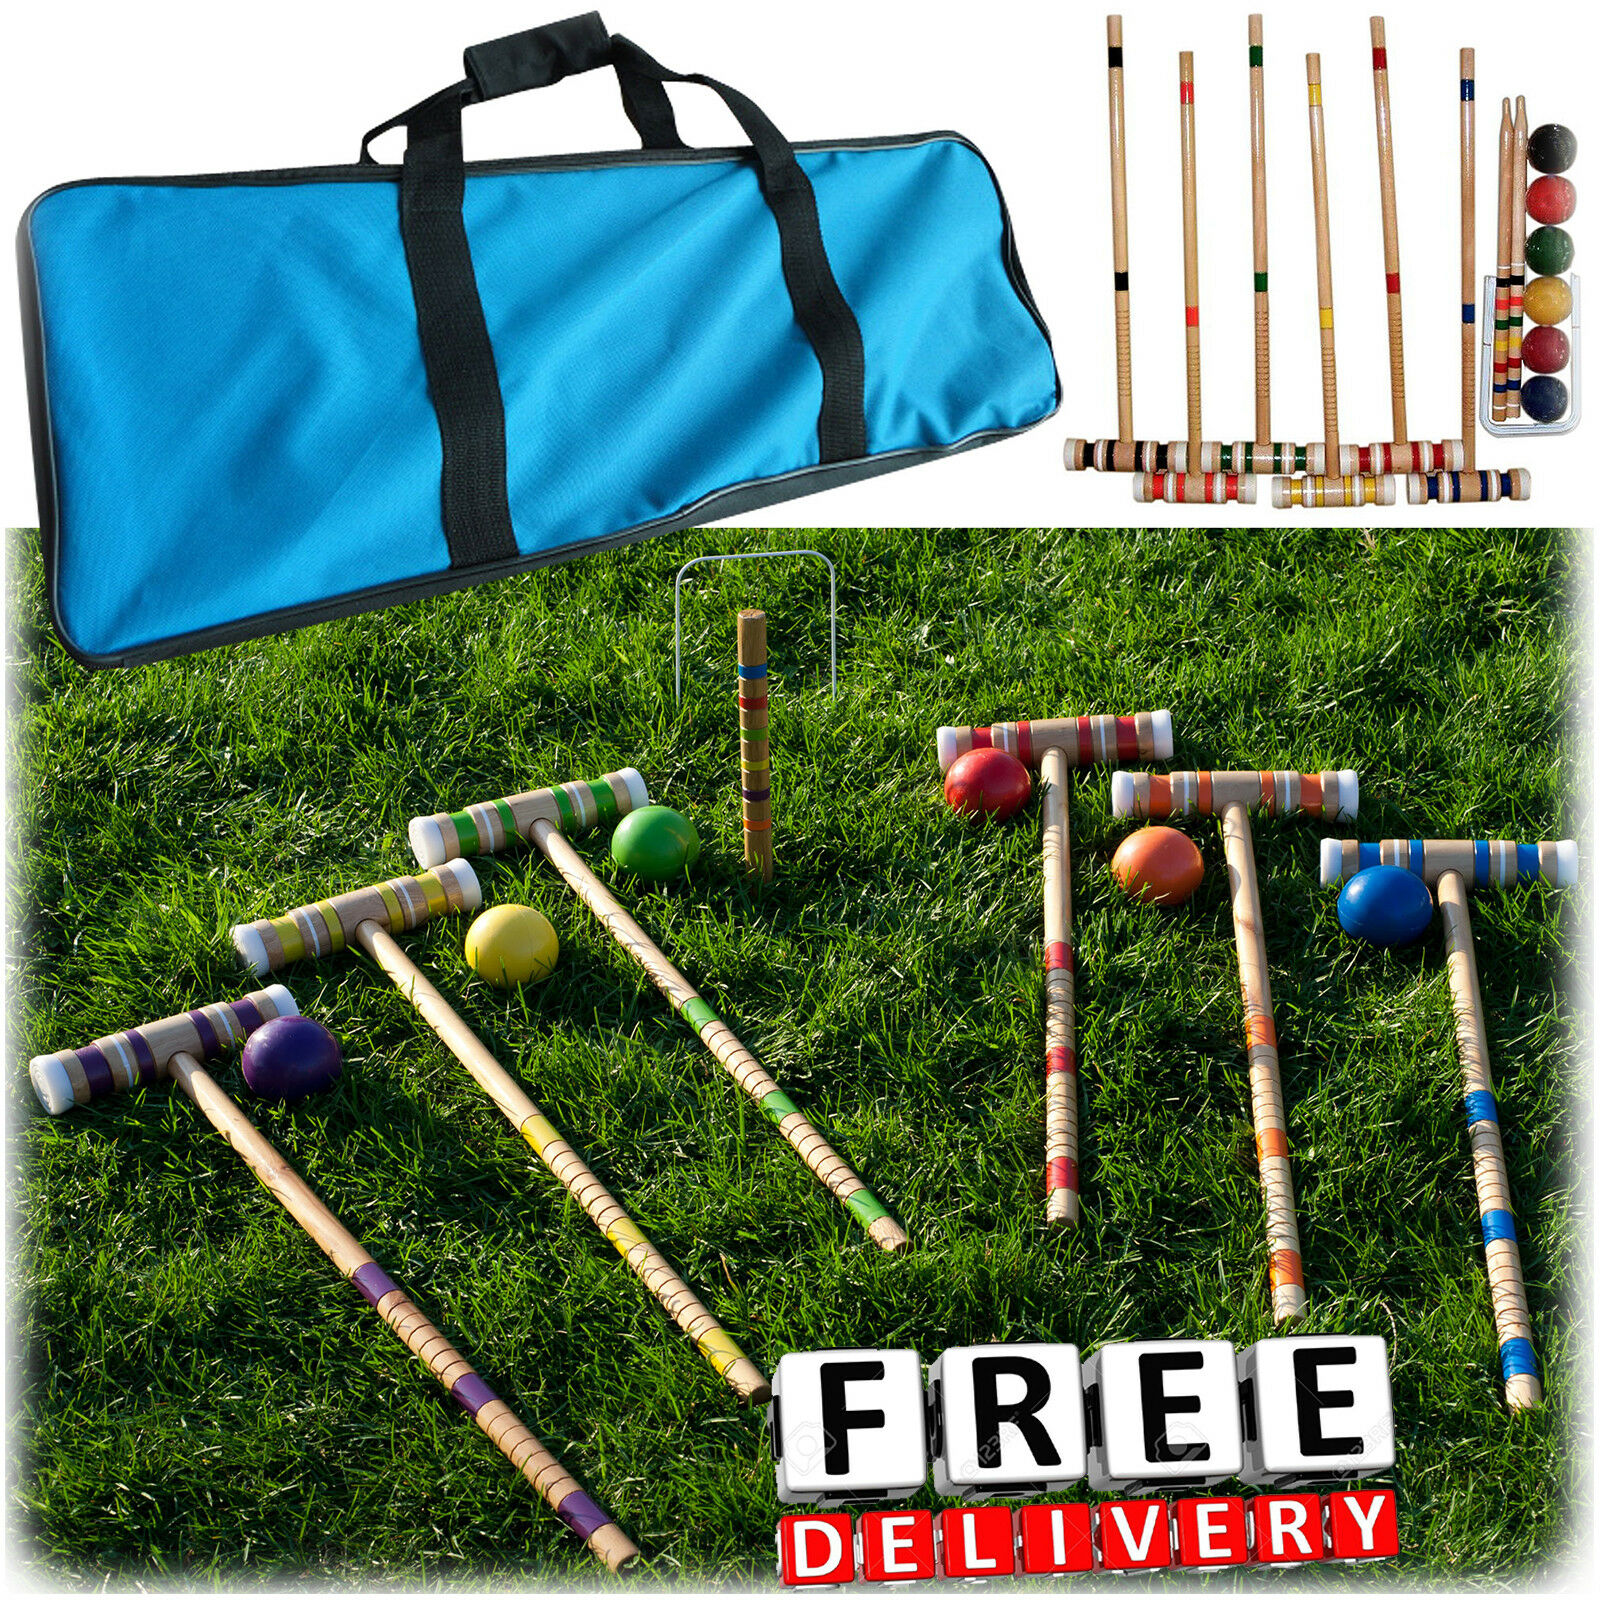 Croquet Set Vintage Lawn Recreation Game Wooden 6 Players  Carry Bag Adult Fun  100% price guarantee